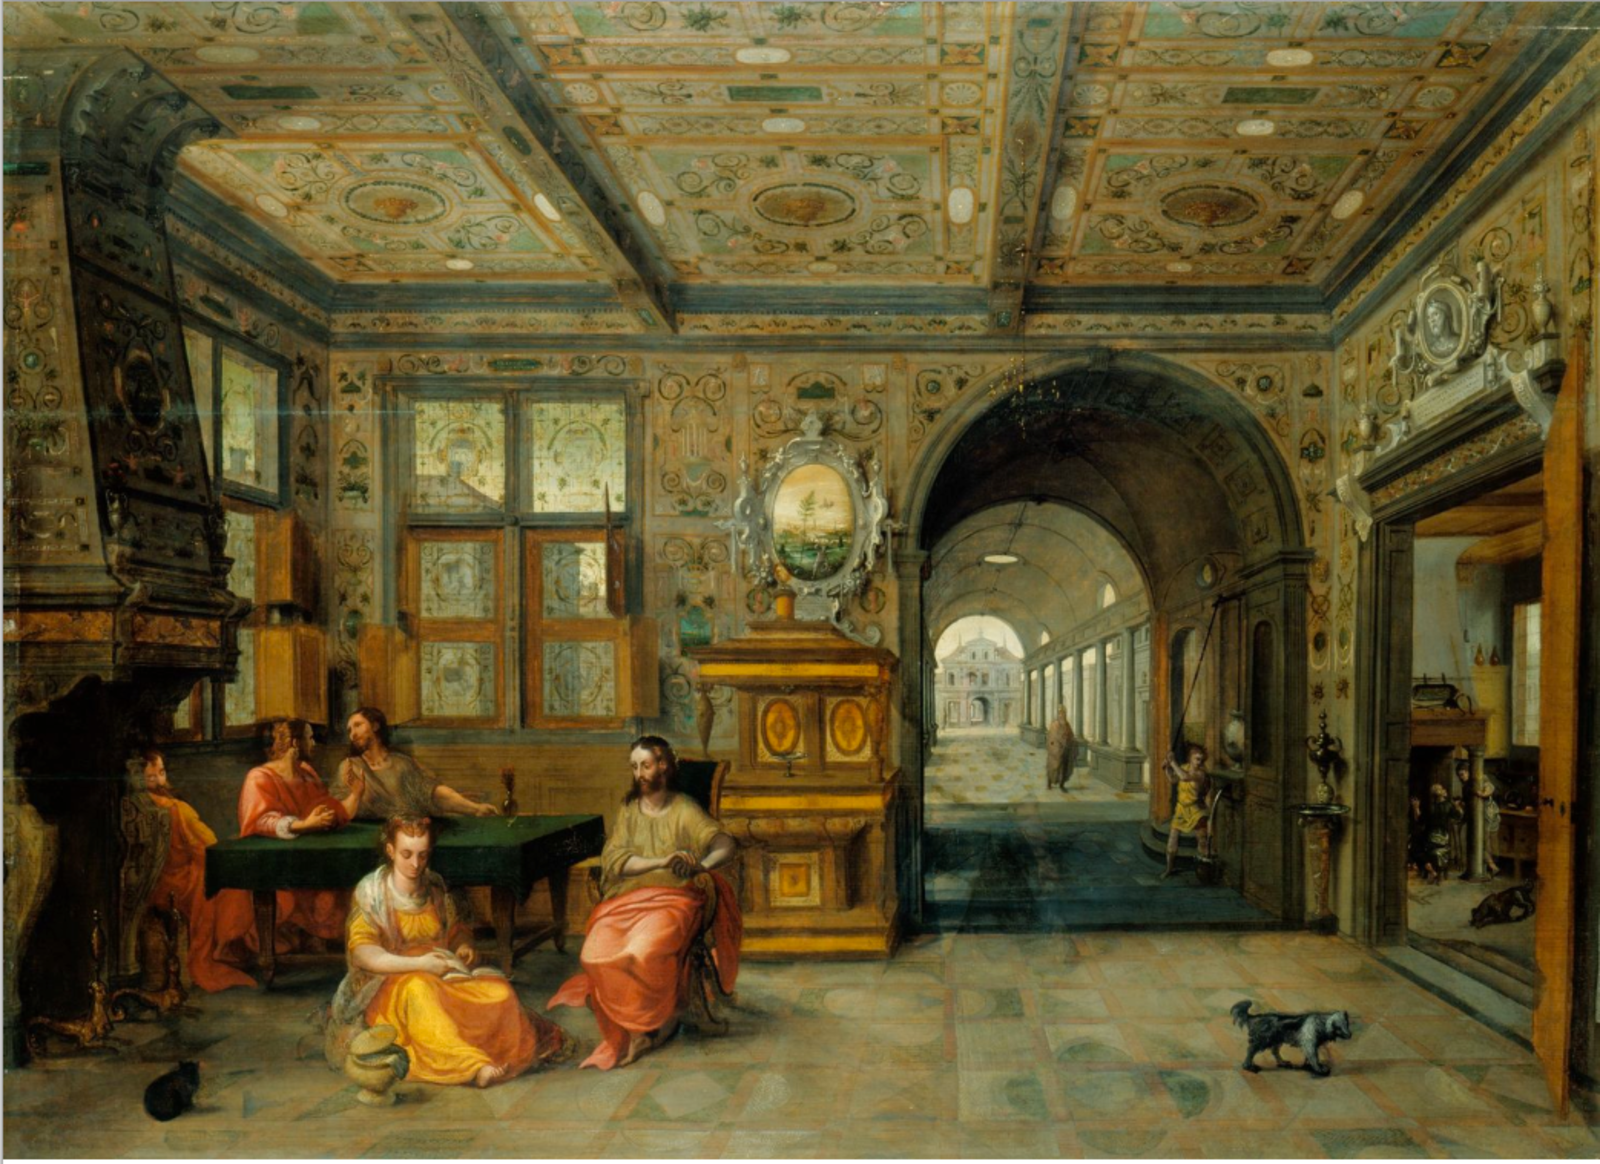 File:Hans Vredeman de Vries - Christ in the House of Martha and Mary.tiff